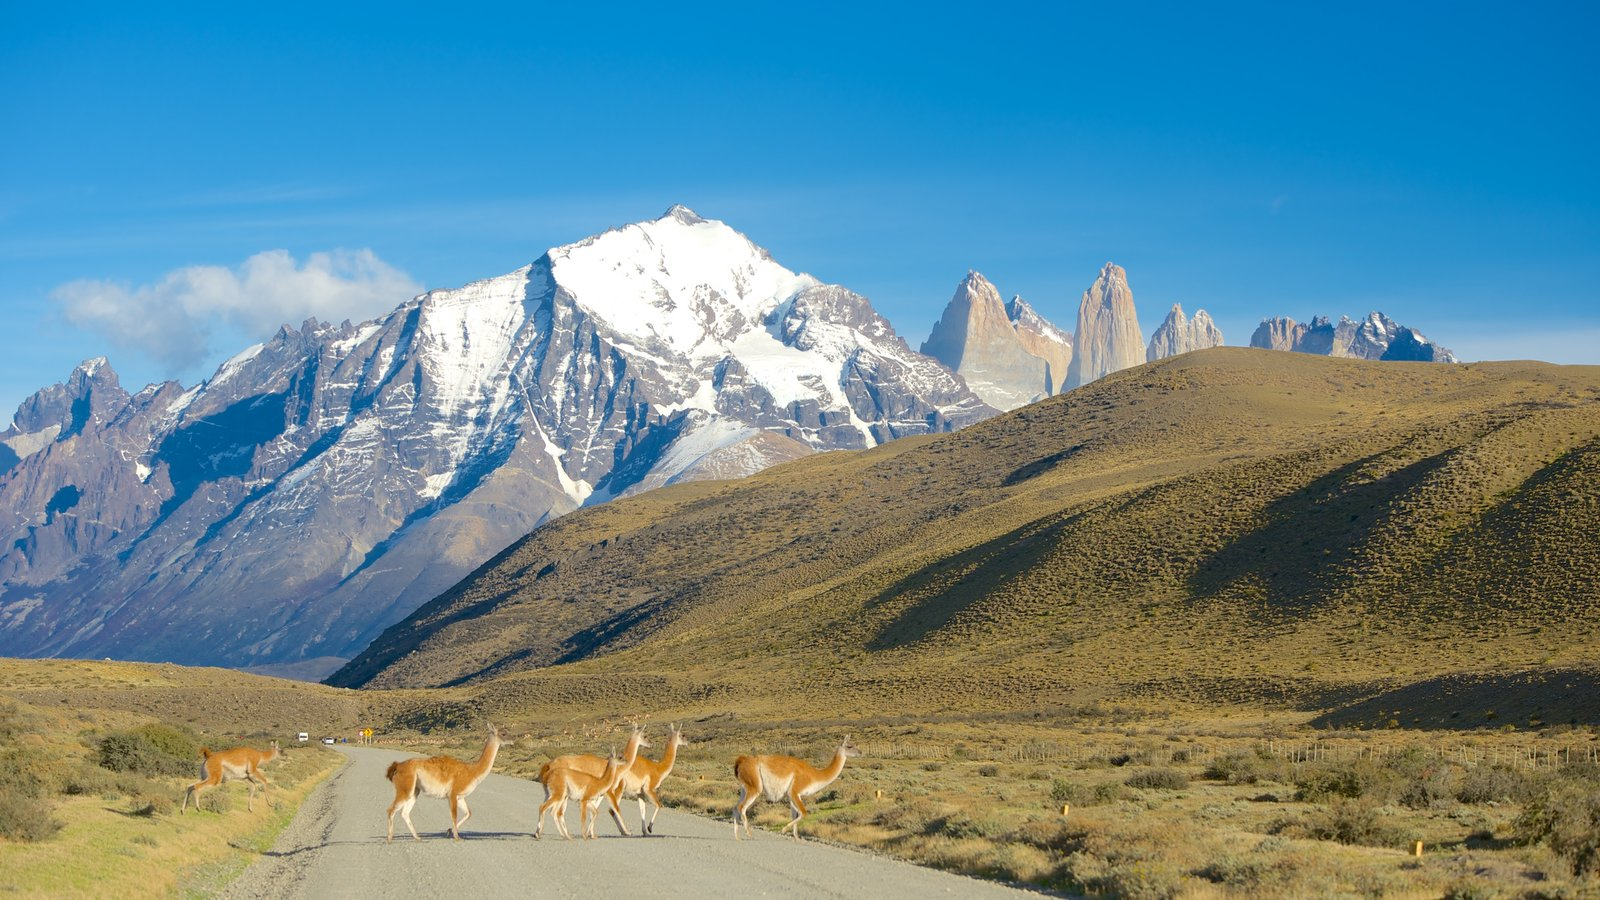 Torres del Paine National Park featuring mountains, snow and animals